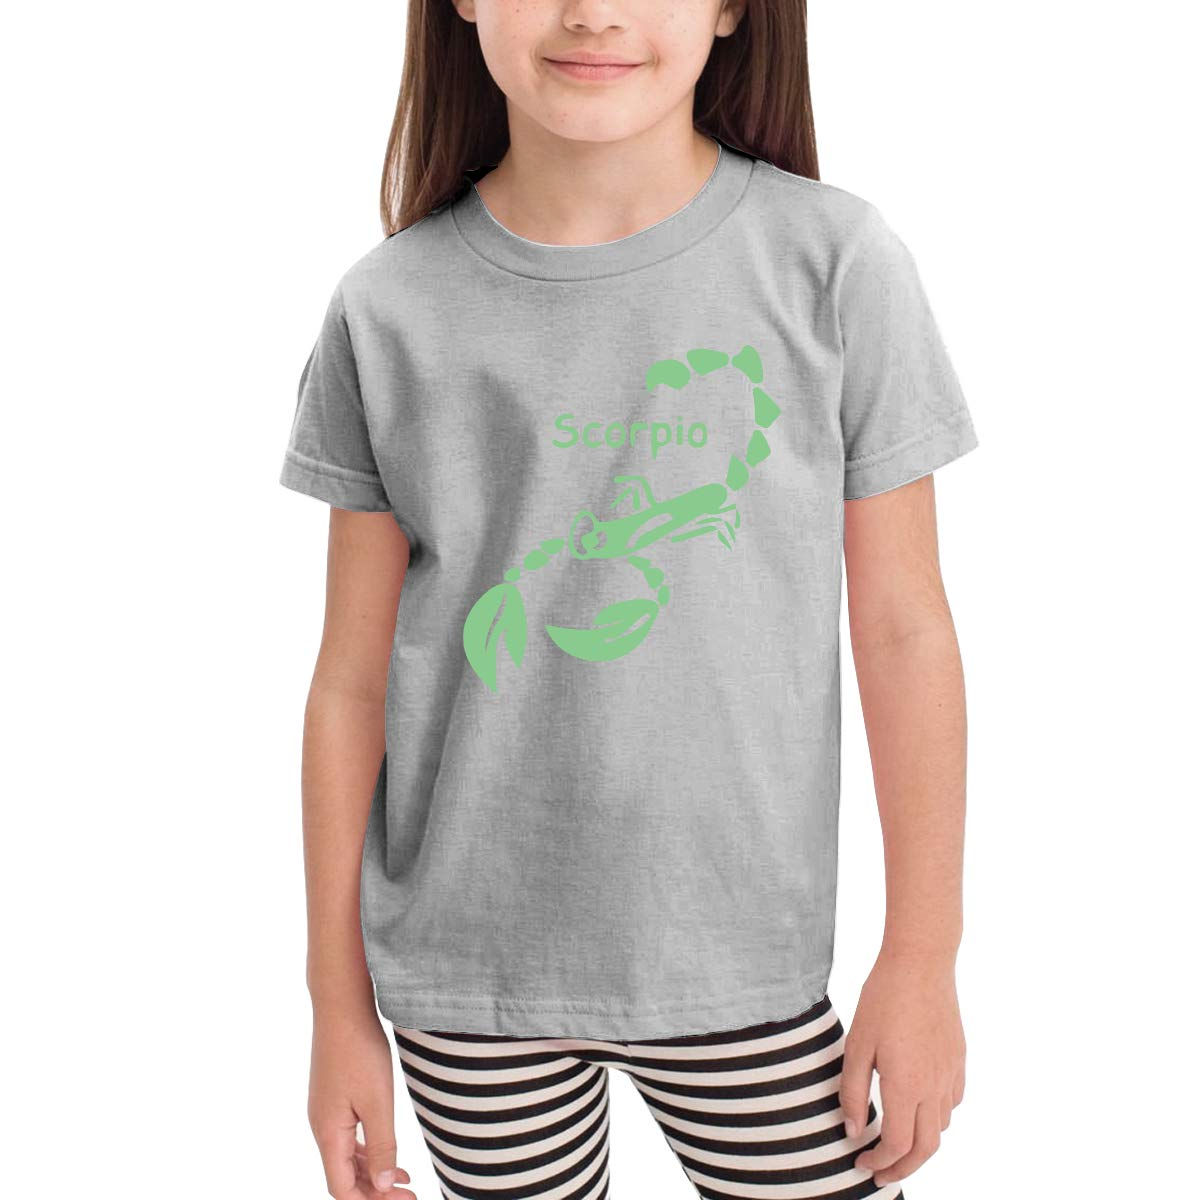 Kids T-Shirt Tops Black Symbols Scorpio Unisex Youths Short Sleeve T-Shirt